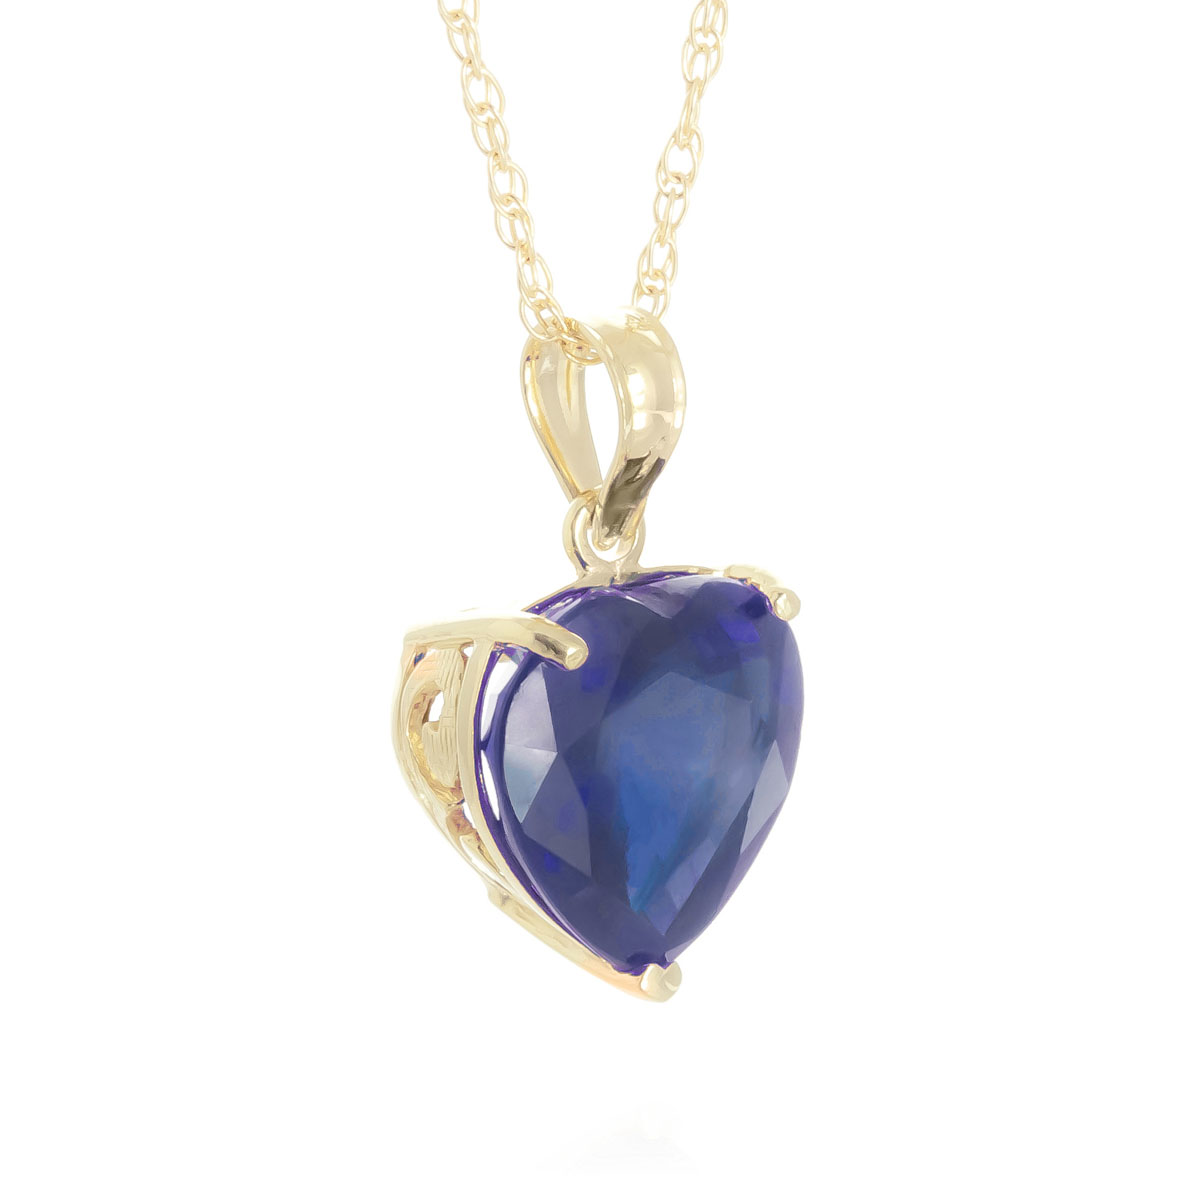 Sapphire large heart pendant necklace 43 ct in 9ct gold 5665y sapphire large heart pendant necklace 43 ct in 9ct gold mozeypictures Gallery